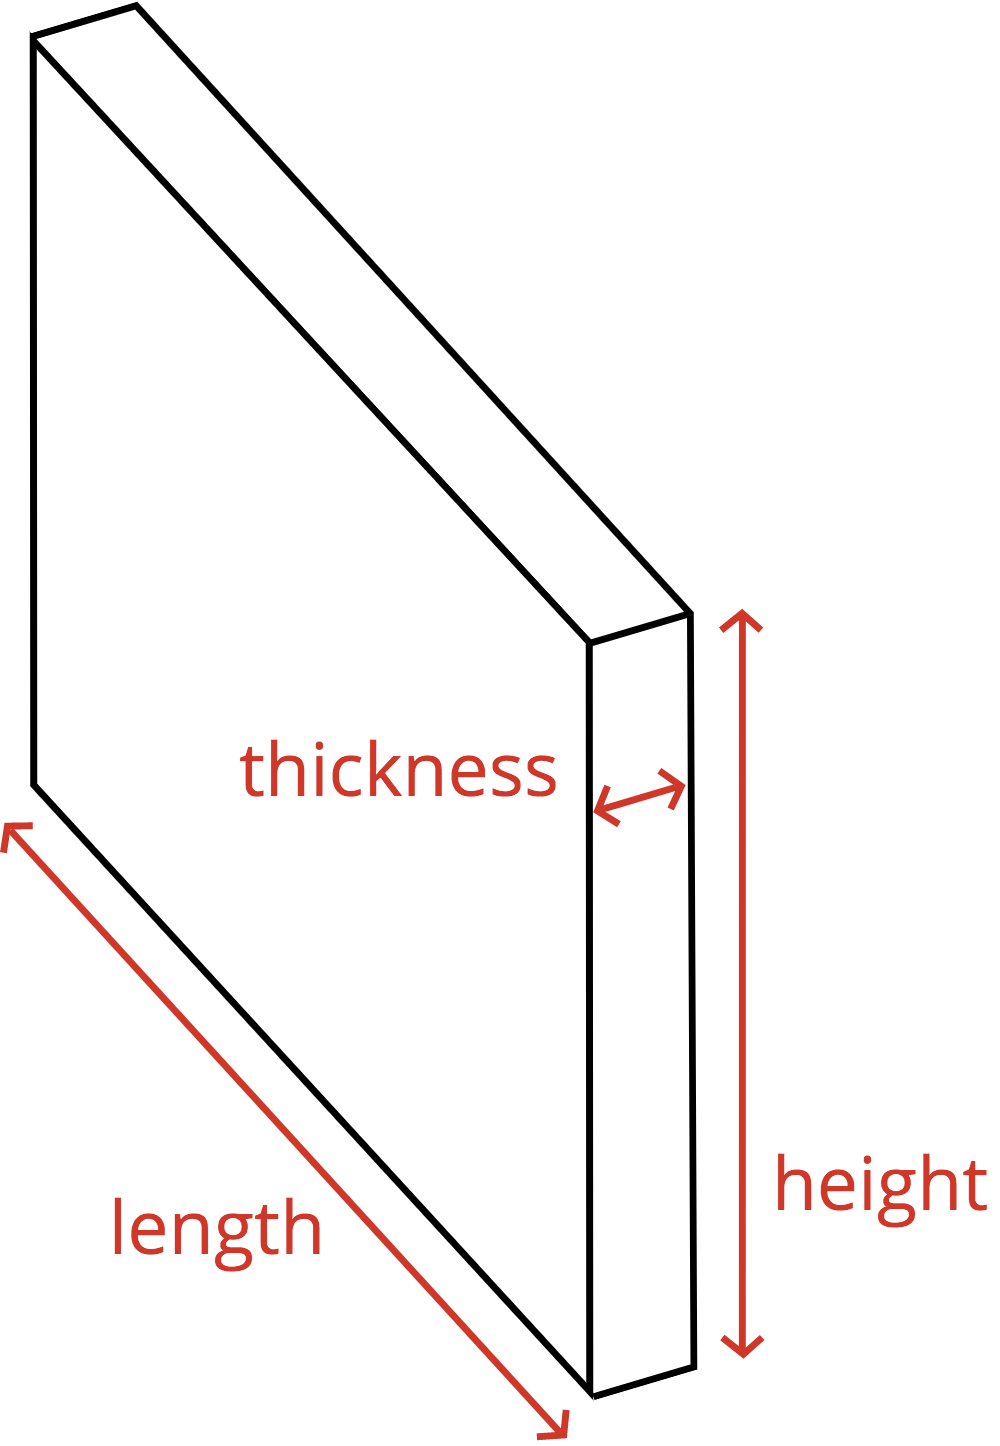 diagram of a concrete wall showing the length, height, and thickness dimensions